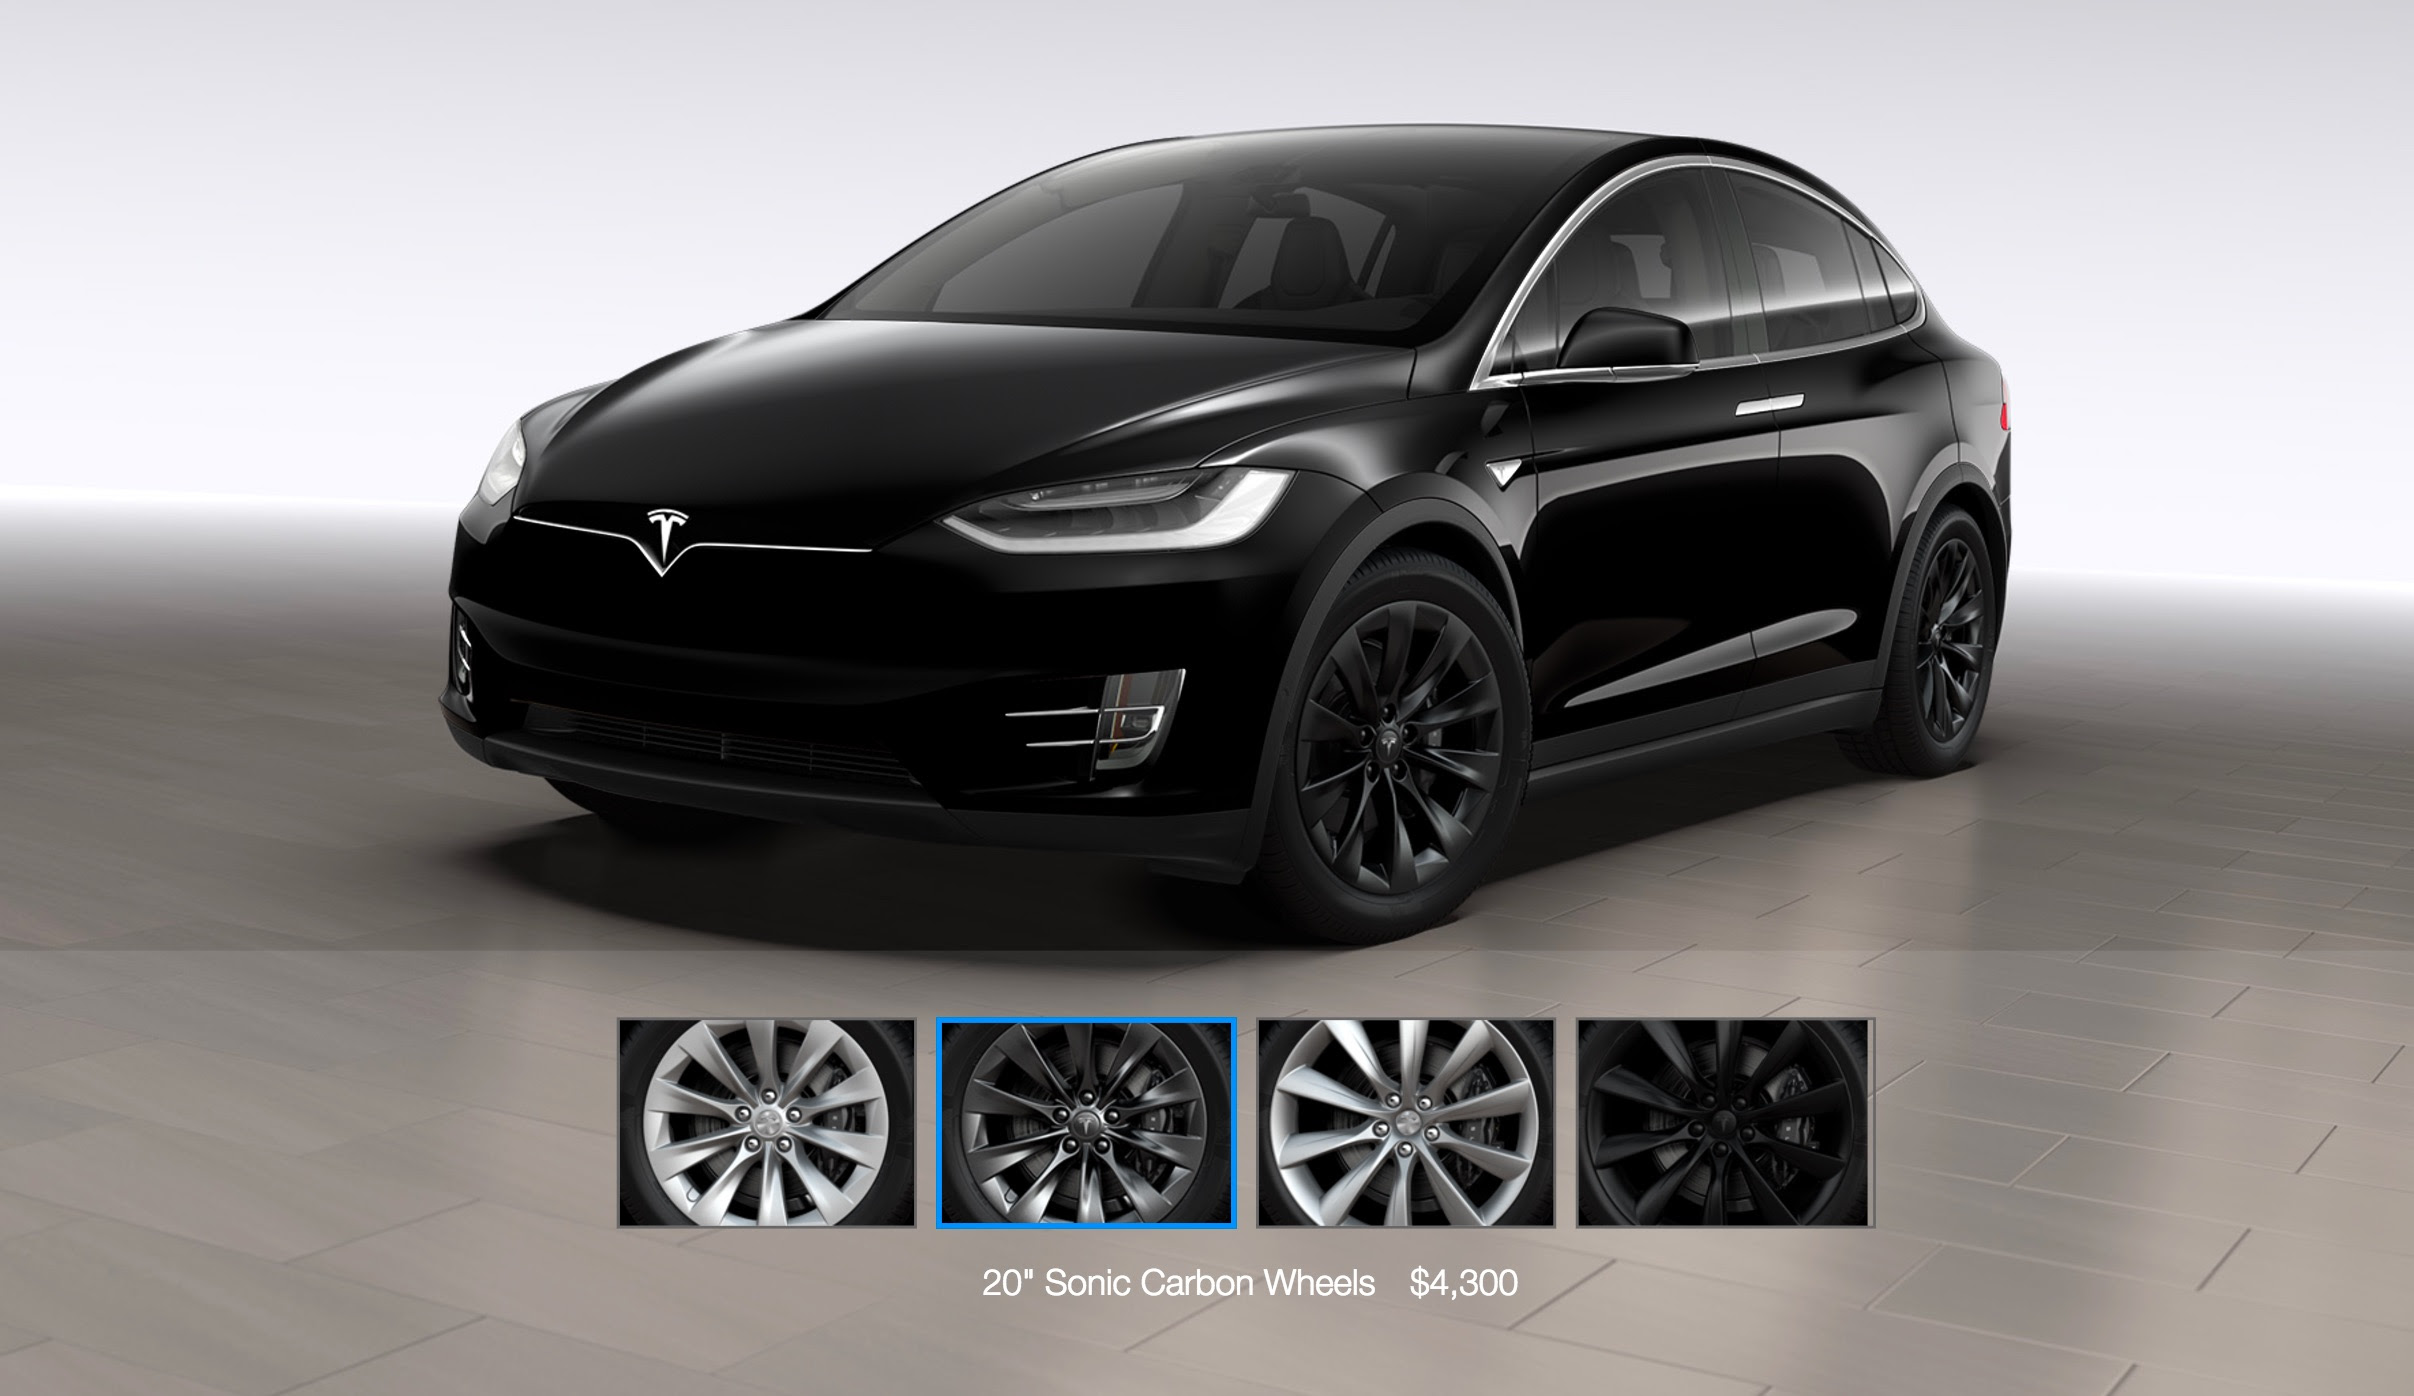 Tesla Model X Gets A 20 Sonic Carbon Wheel And Center Console Option